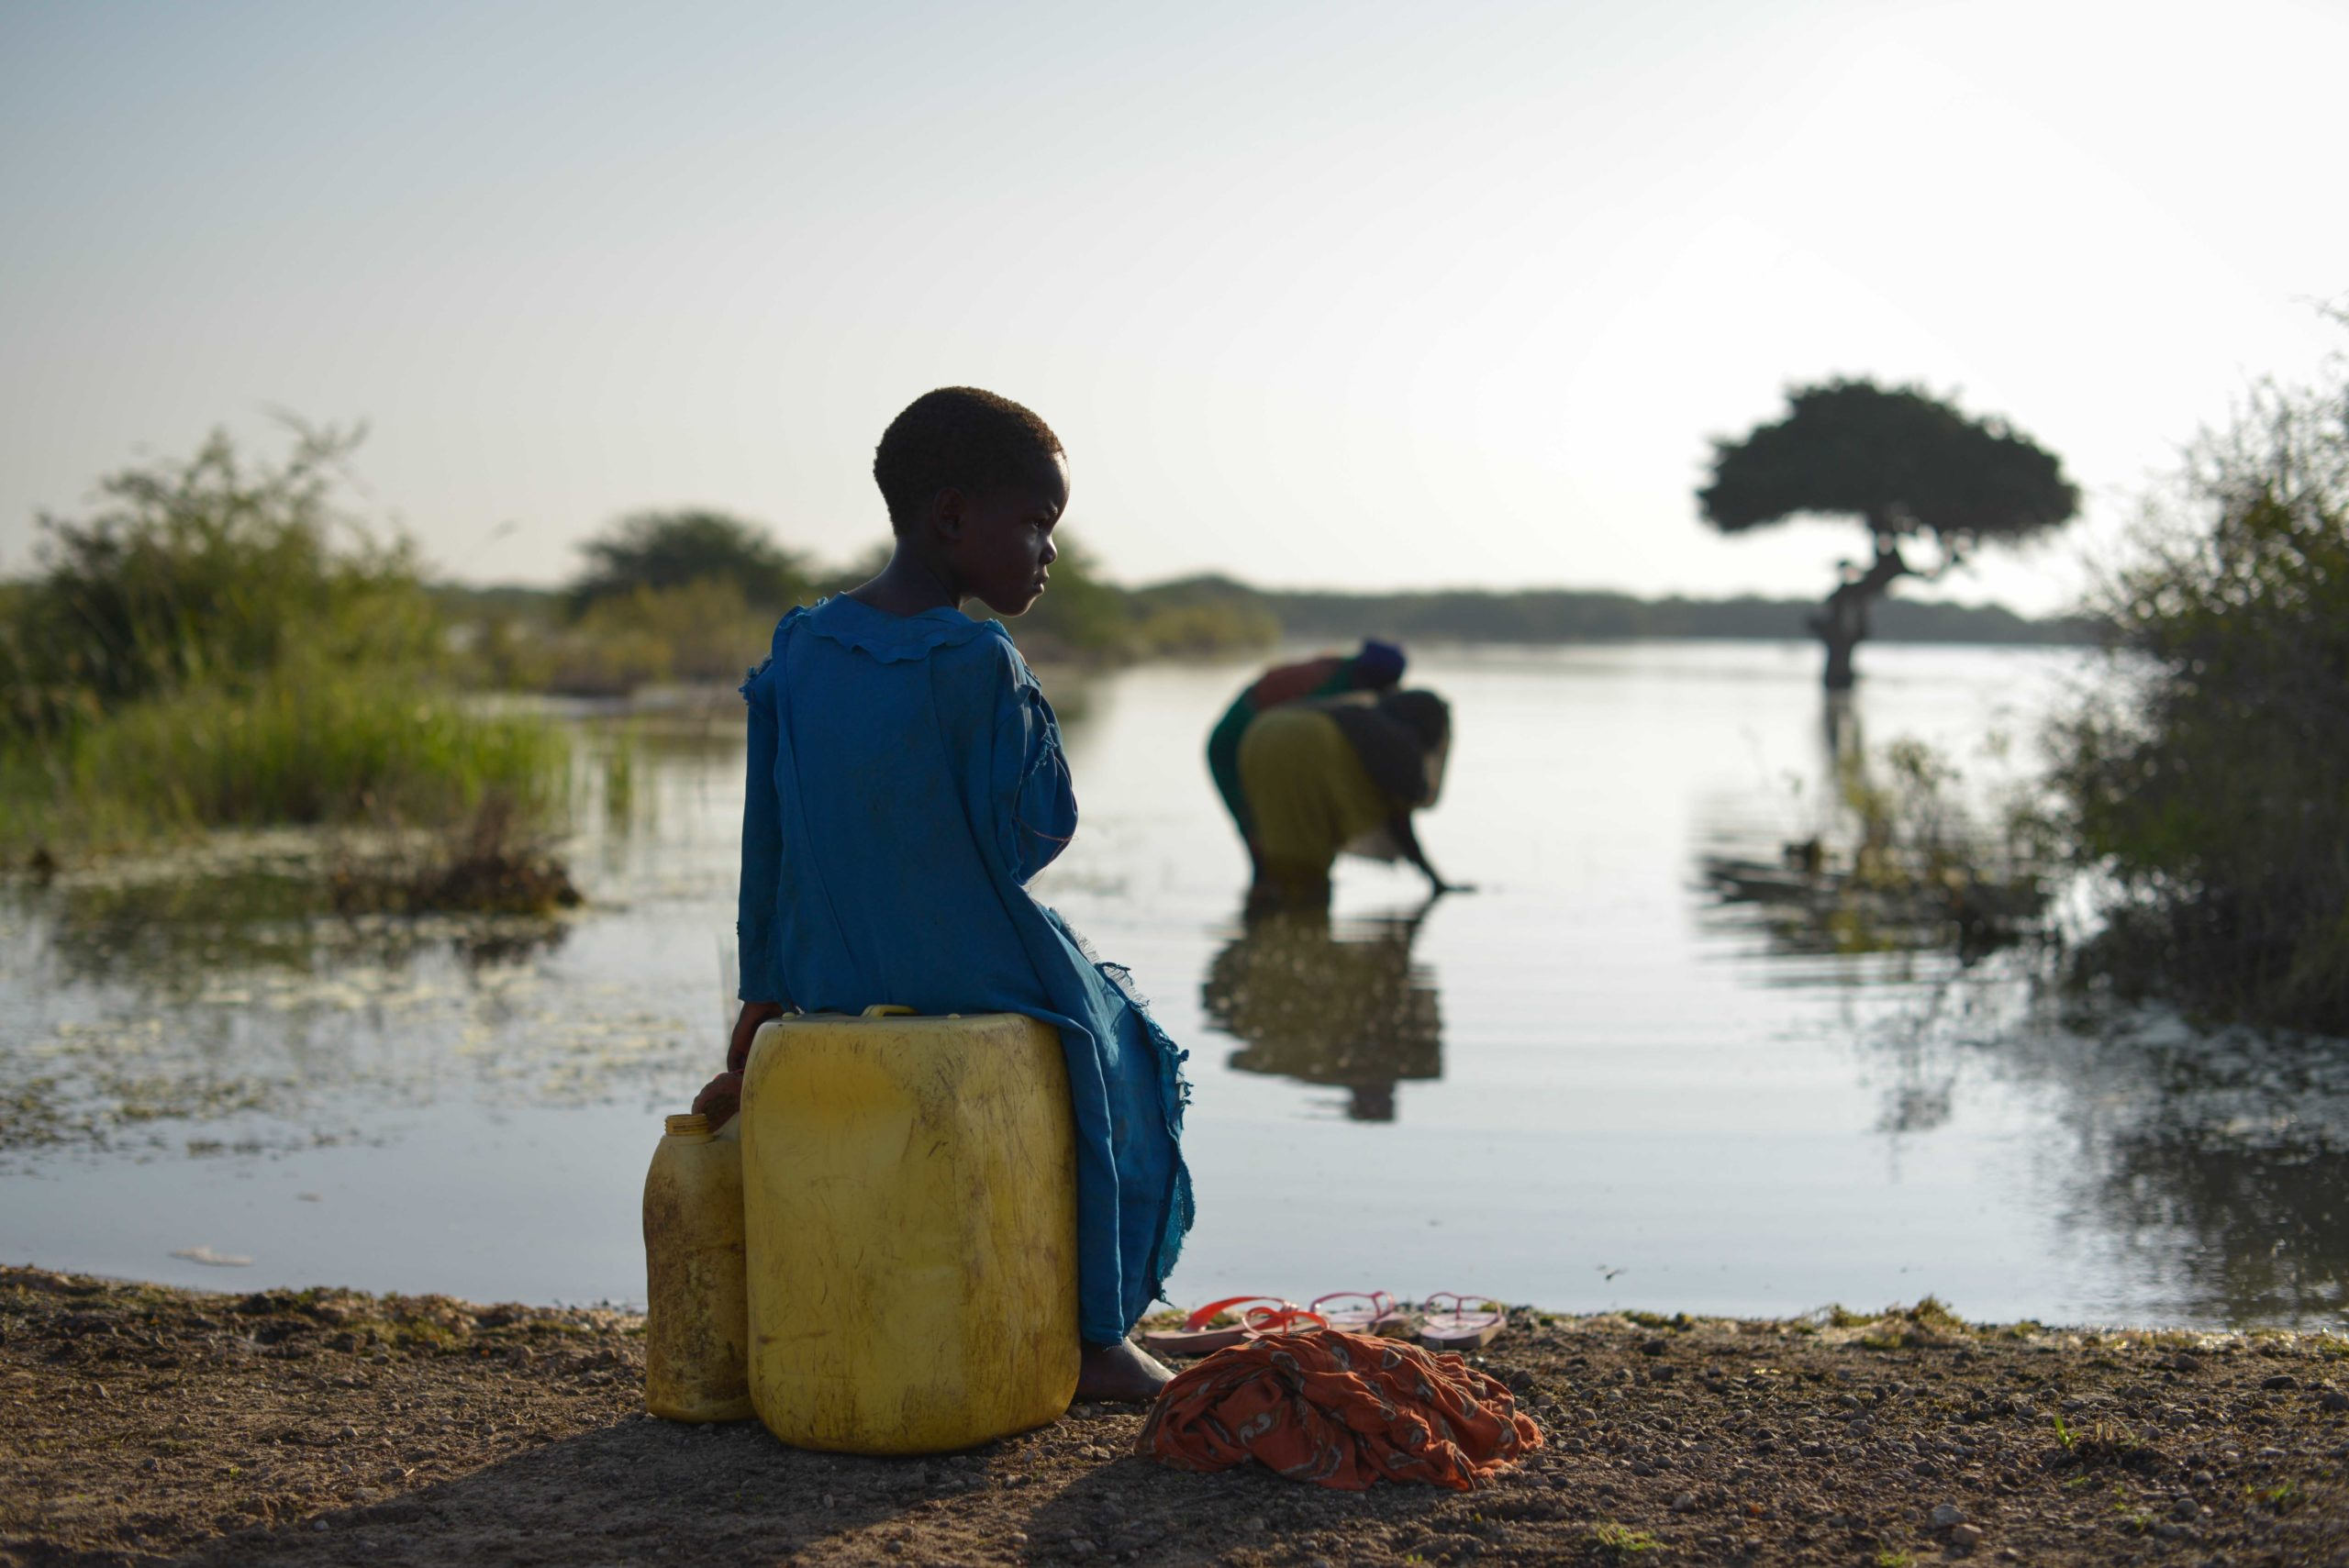 A young girl sits on a jerry can, as her mother fills up another with water, near the town of Jowhar, Somalia, on December 15. The area around Jowhar has experienced large amounts of flooding this year, completely blocking off the town from main roads and forcing thousands to flee their homes and seek shelter on higher ground. AU UN IST PHOTO / Tobin Jones